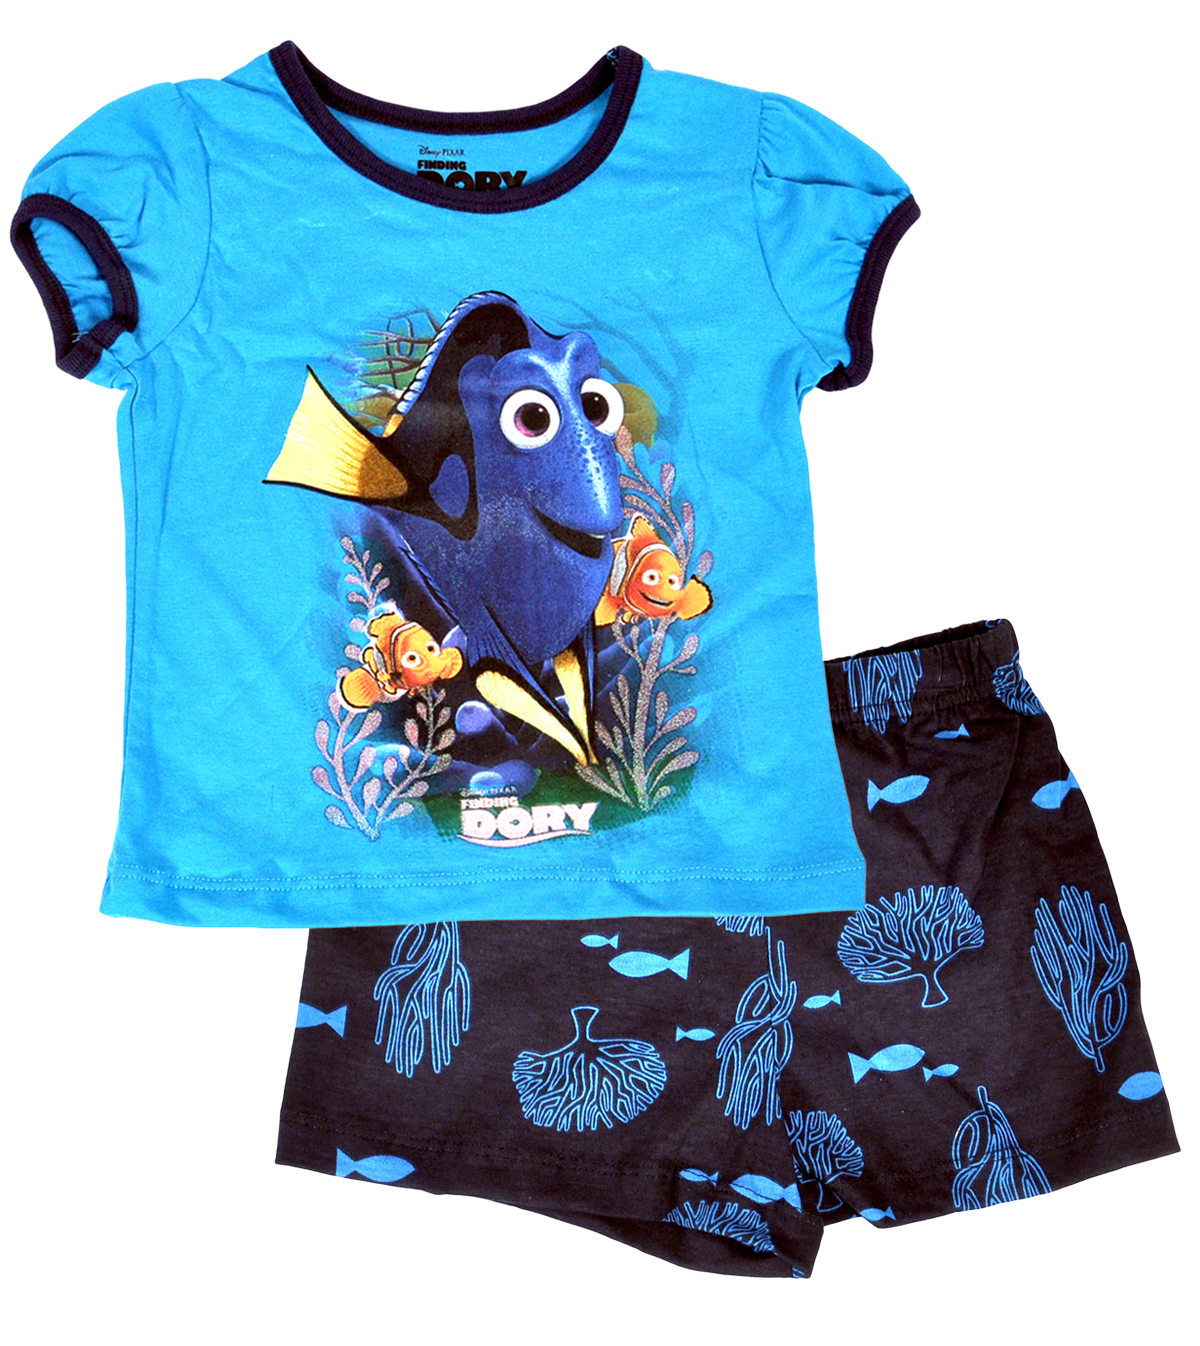 Pixar Finding Dory Toddler Girls 2-Piece Set Outfit T-Shirt & Shorts